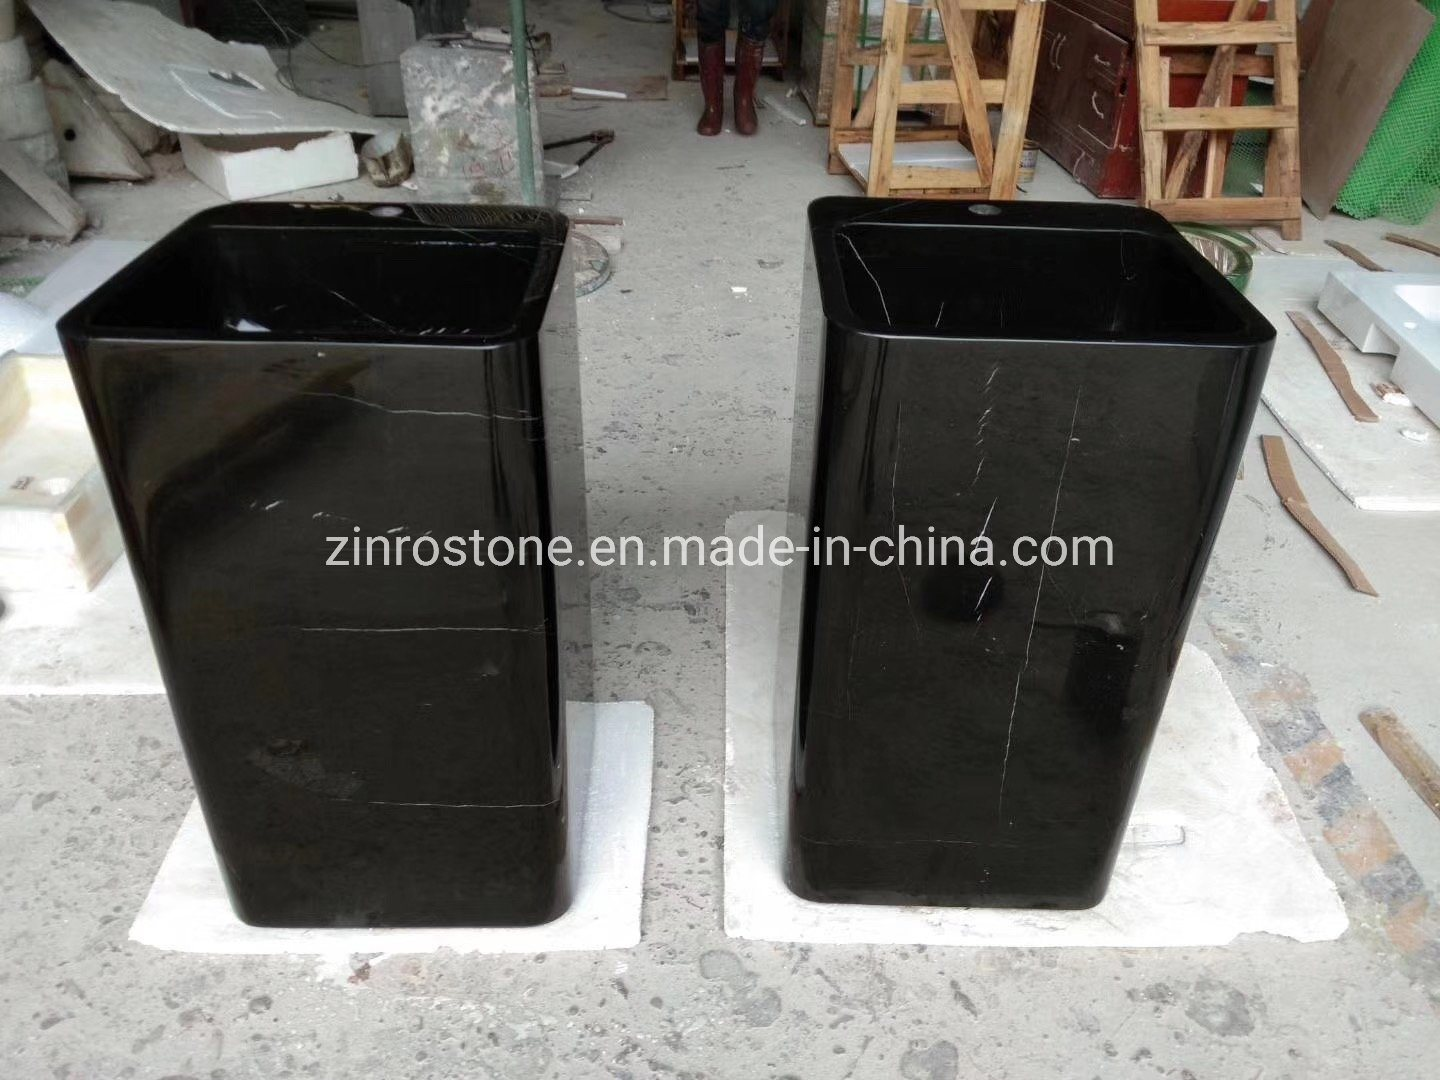 China Polished Black Marble Dark Brown Granite Sinks Basin For Bathroom Tops China Outdoor Furniture Natural Marble Sinks